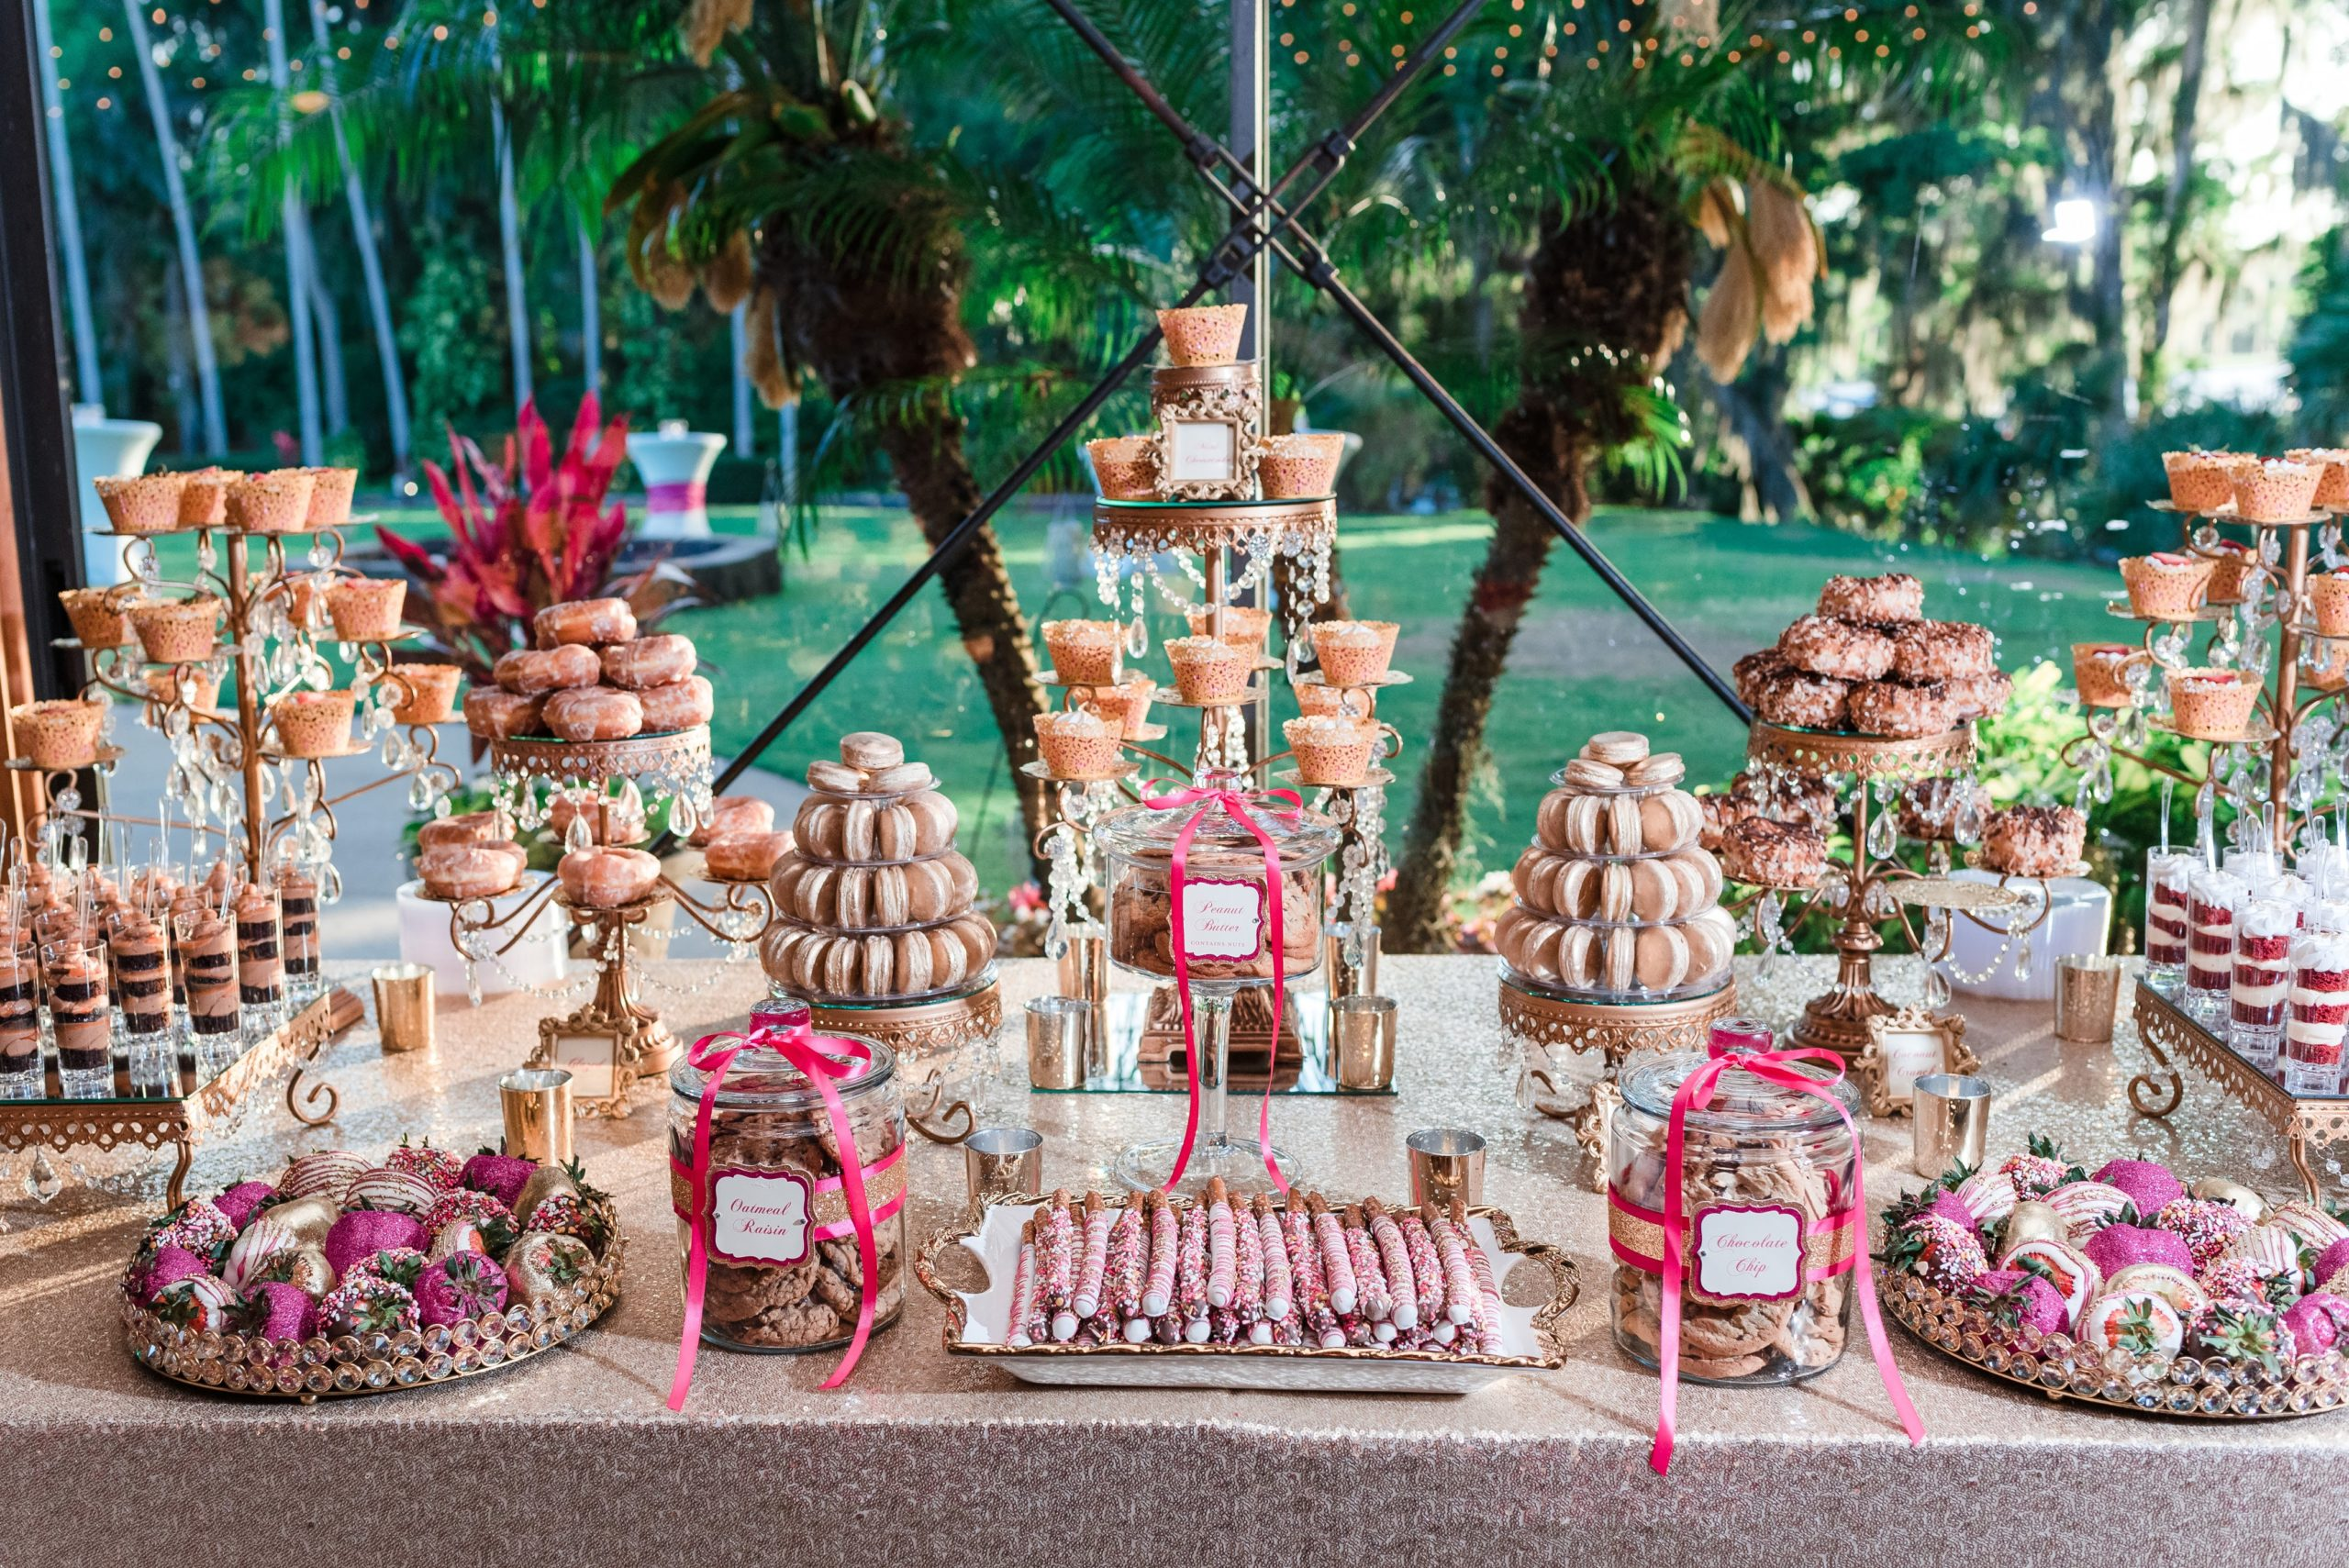 fun pink candy bar and dessert display in glass jars